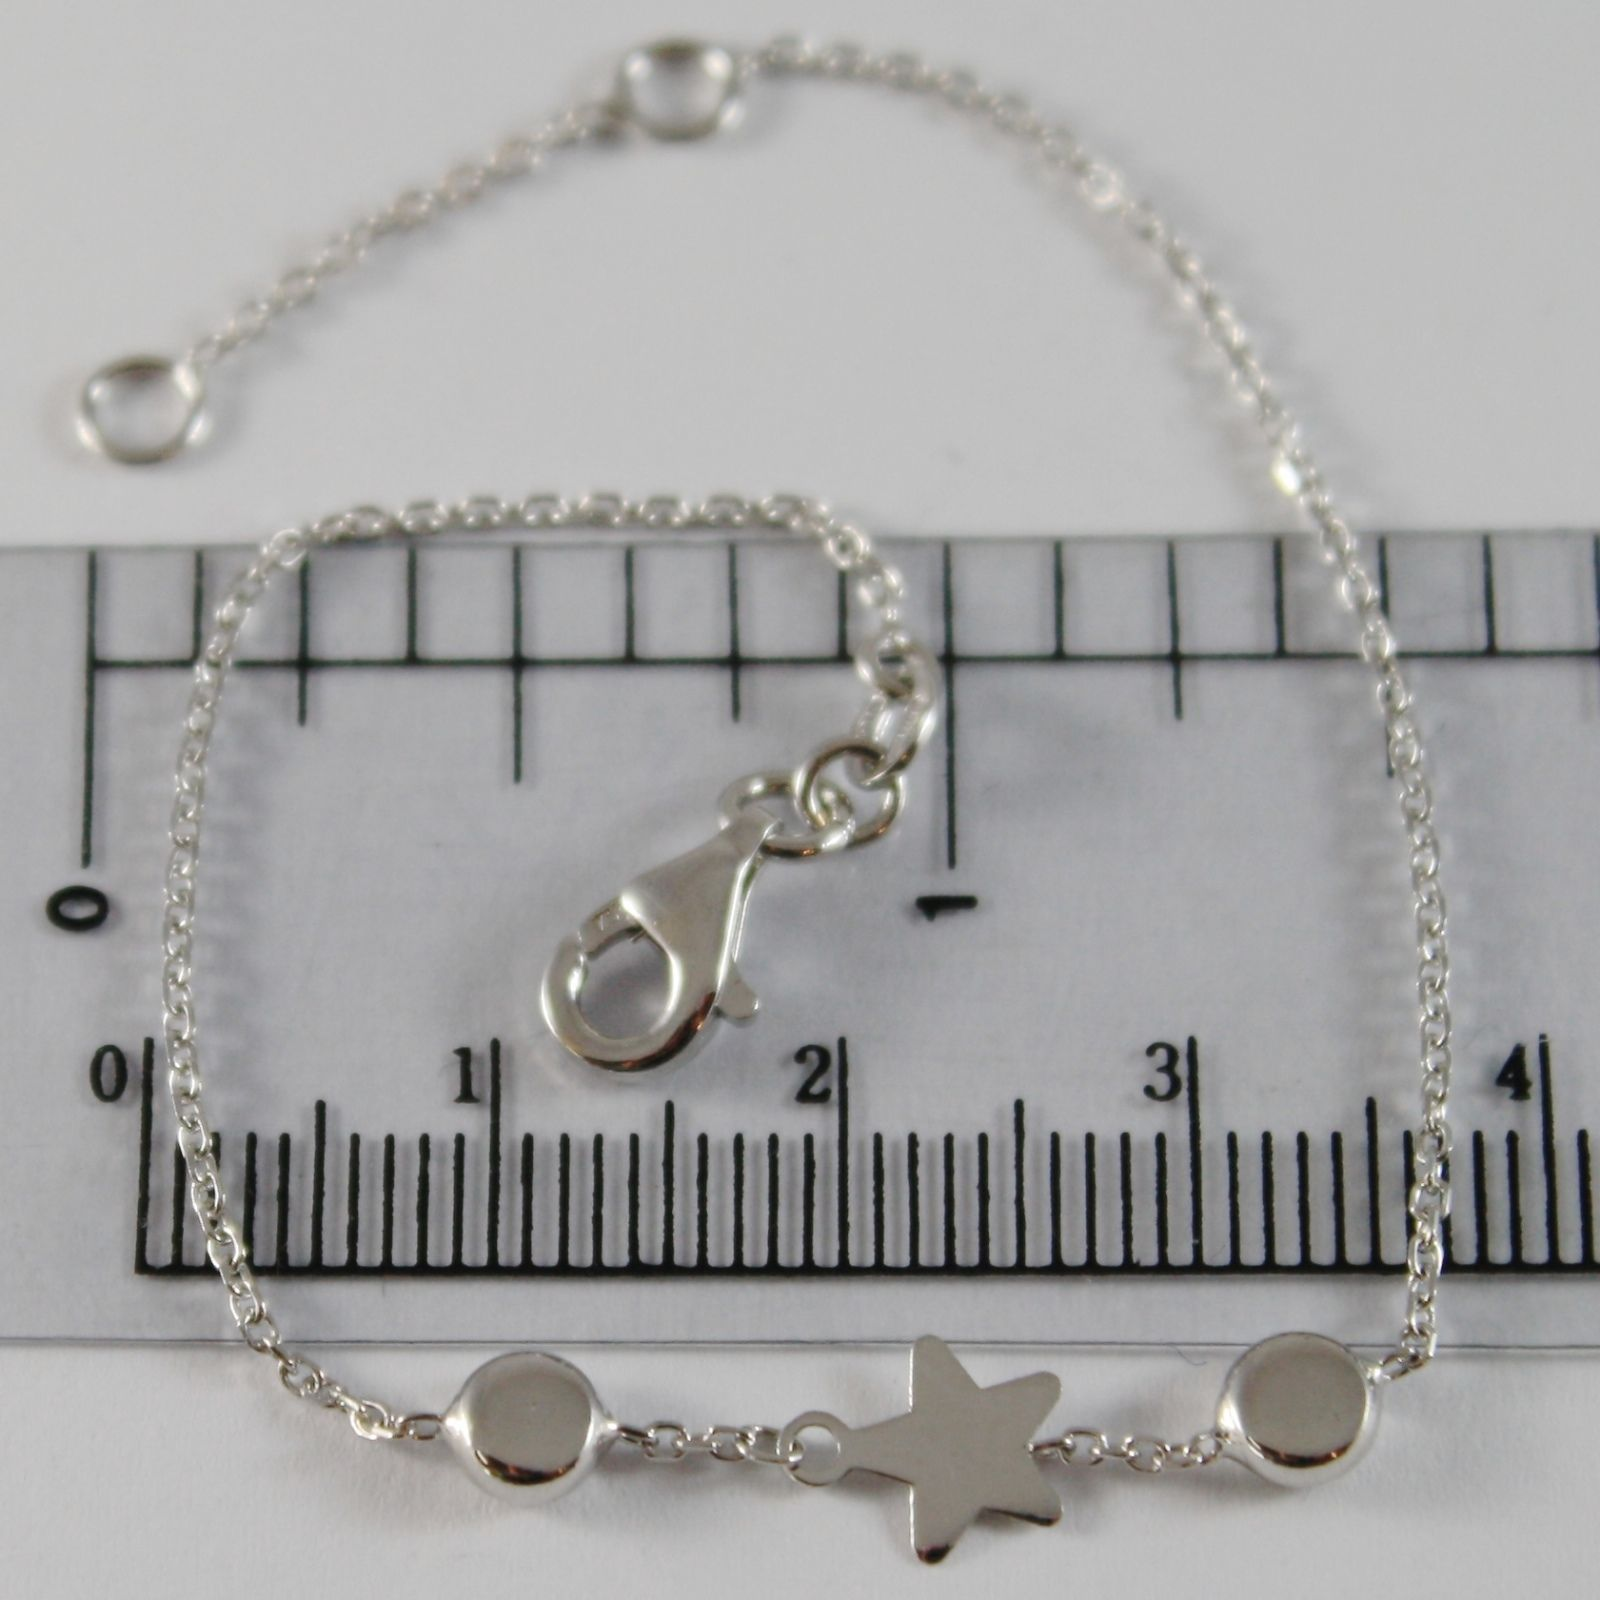 18K WHITE GOLD GIRL BRACELET 6.70 INCHES WITH FLAT STAR AND DISC, MADE IN ITALY